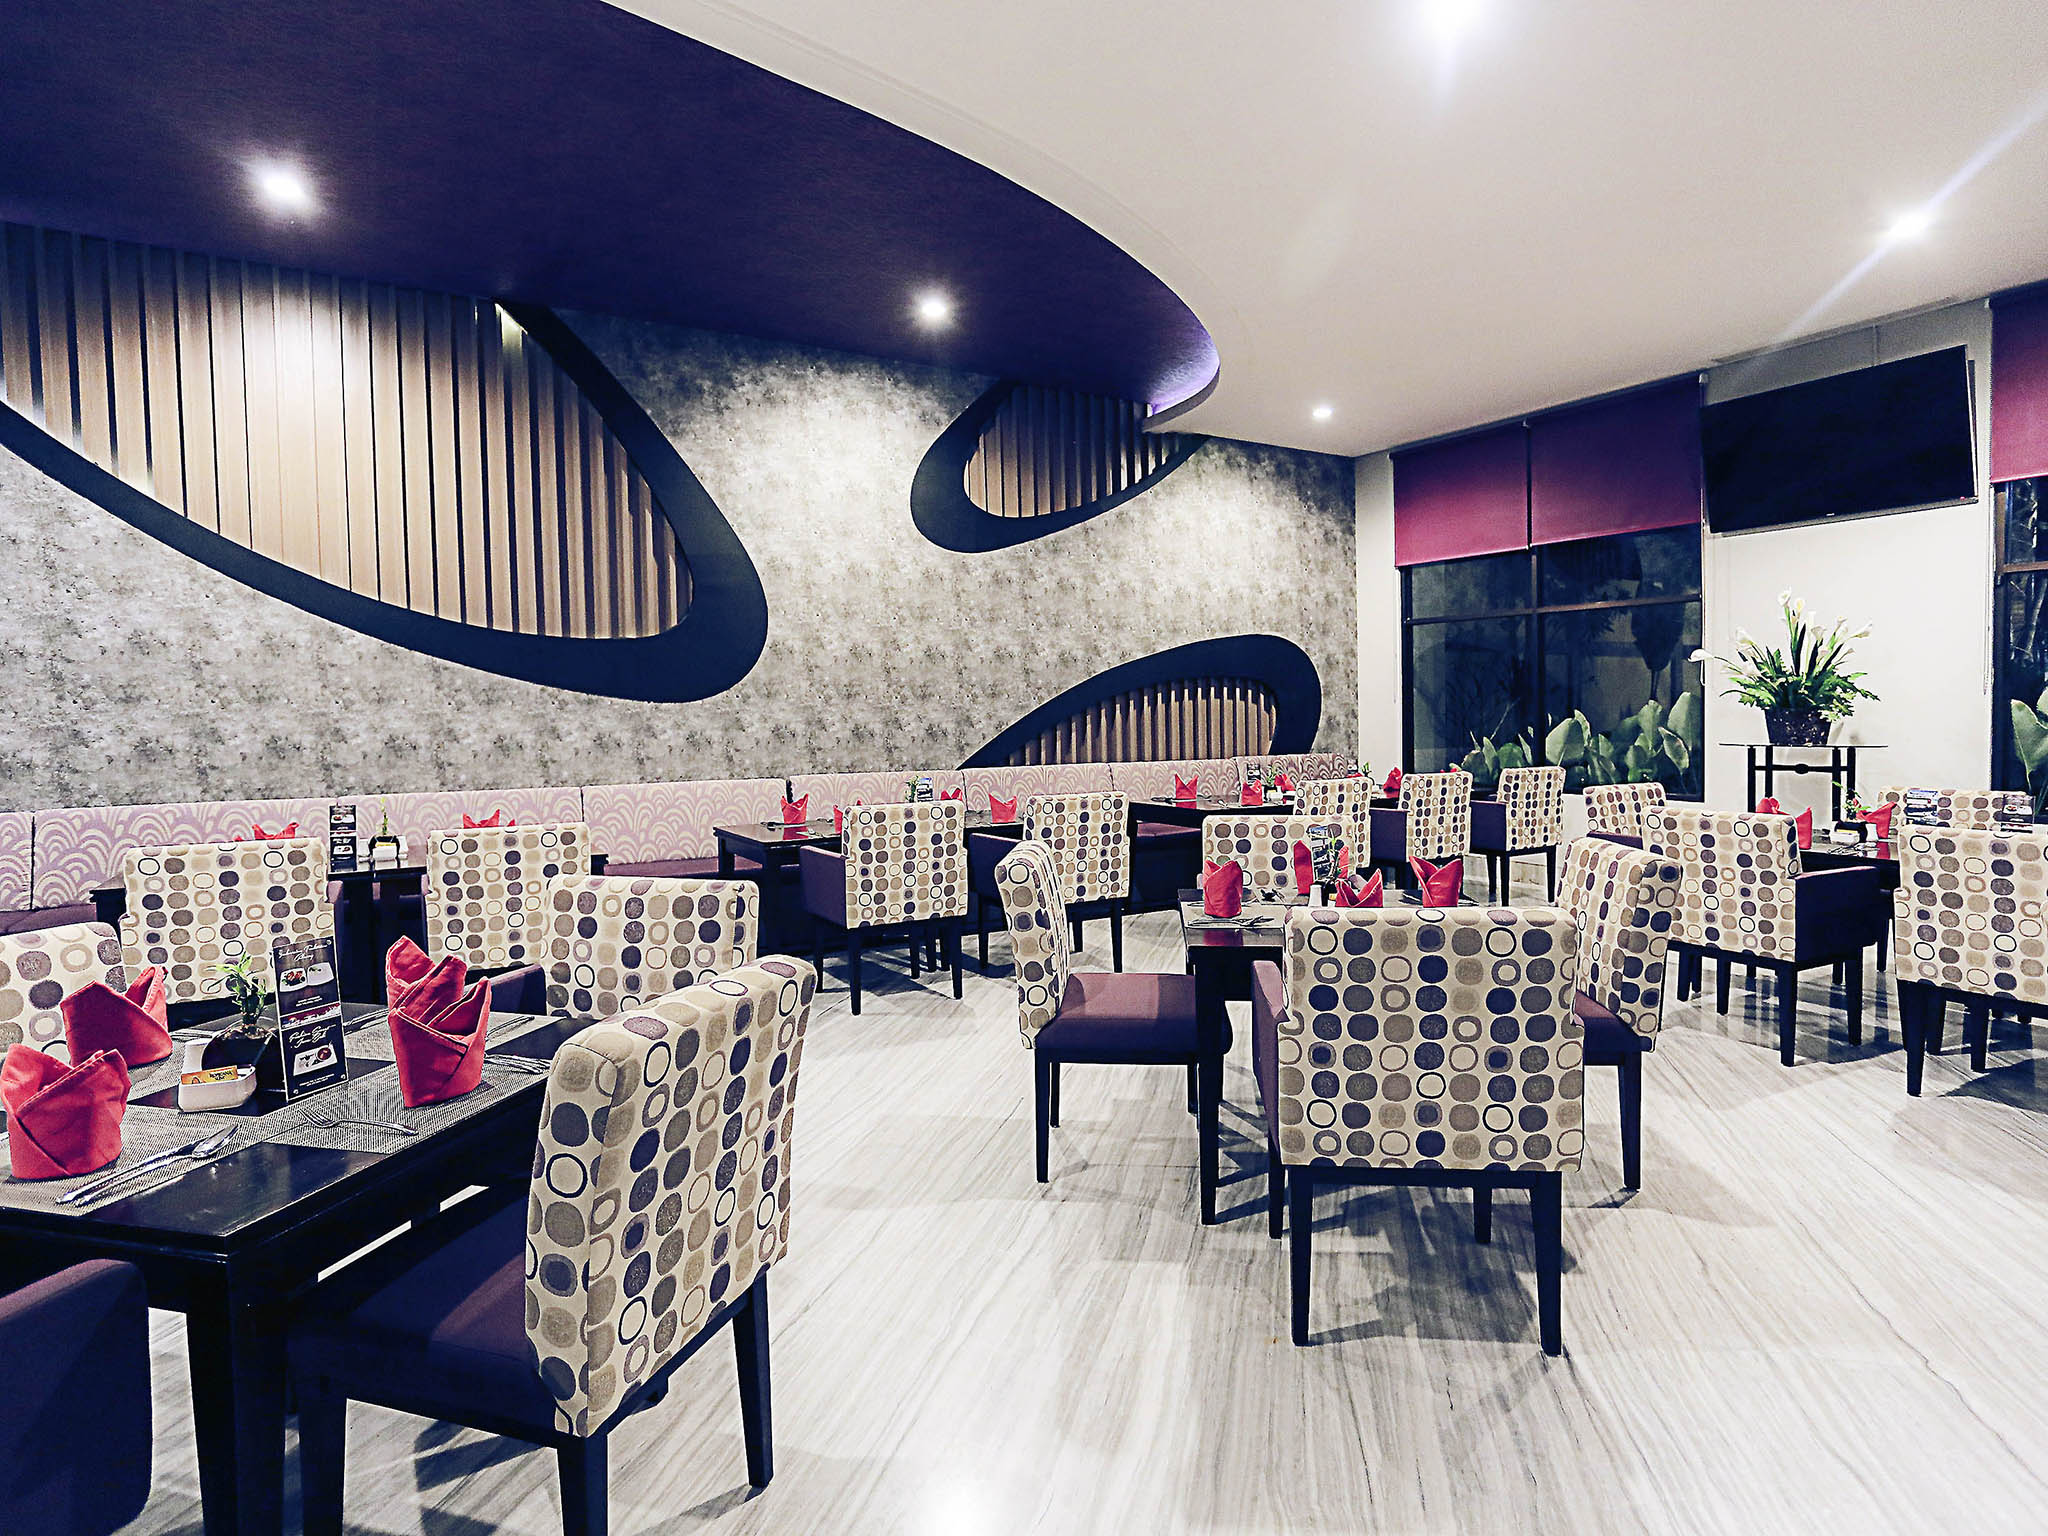 palu furniture. Restoran - Mercure Palu Furniture O